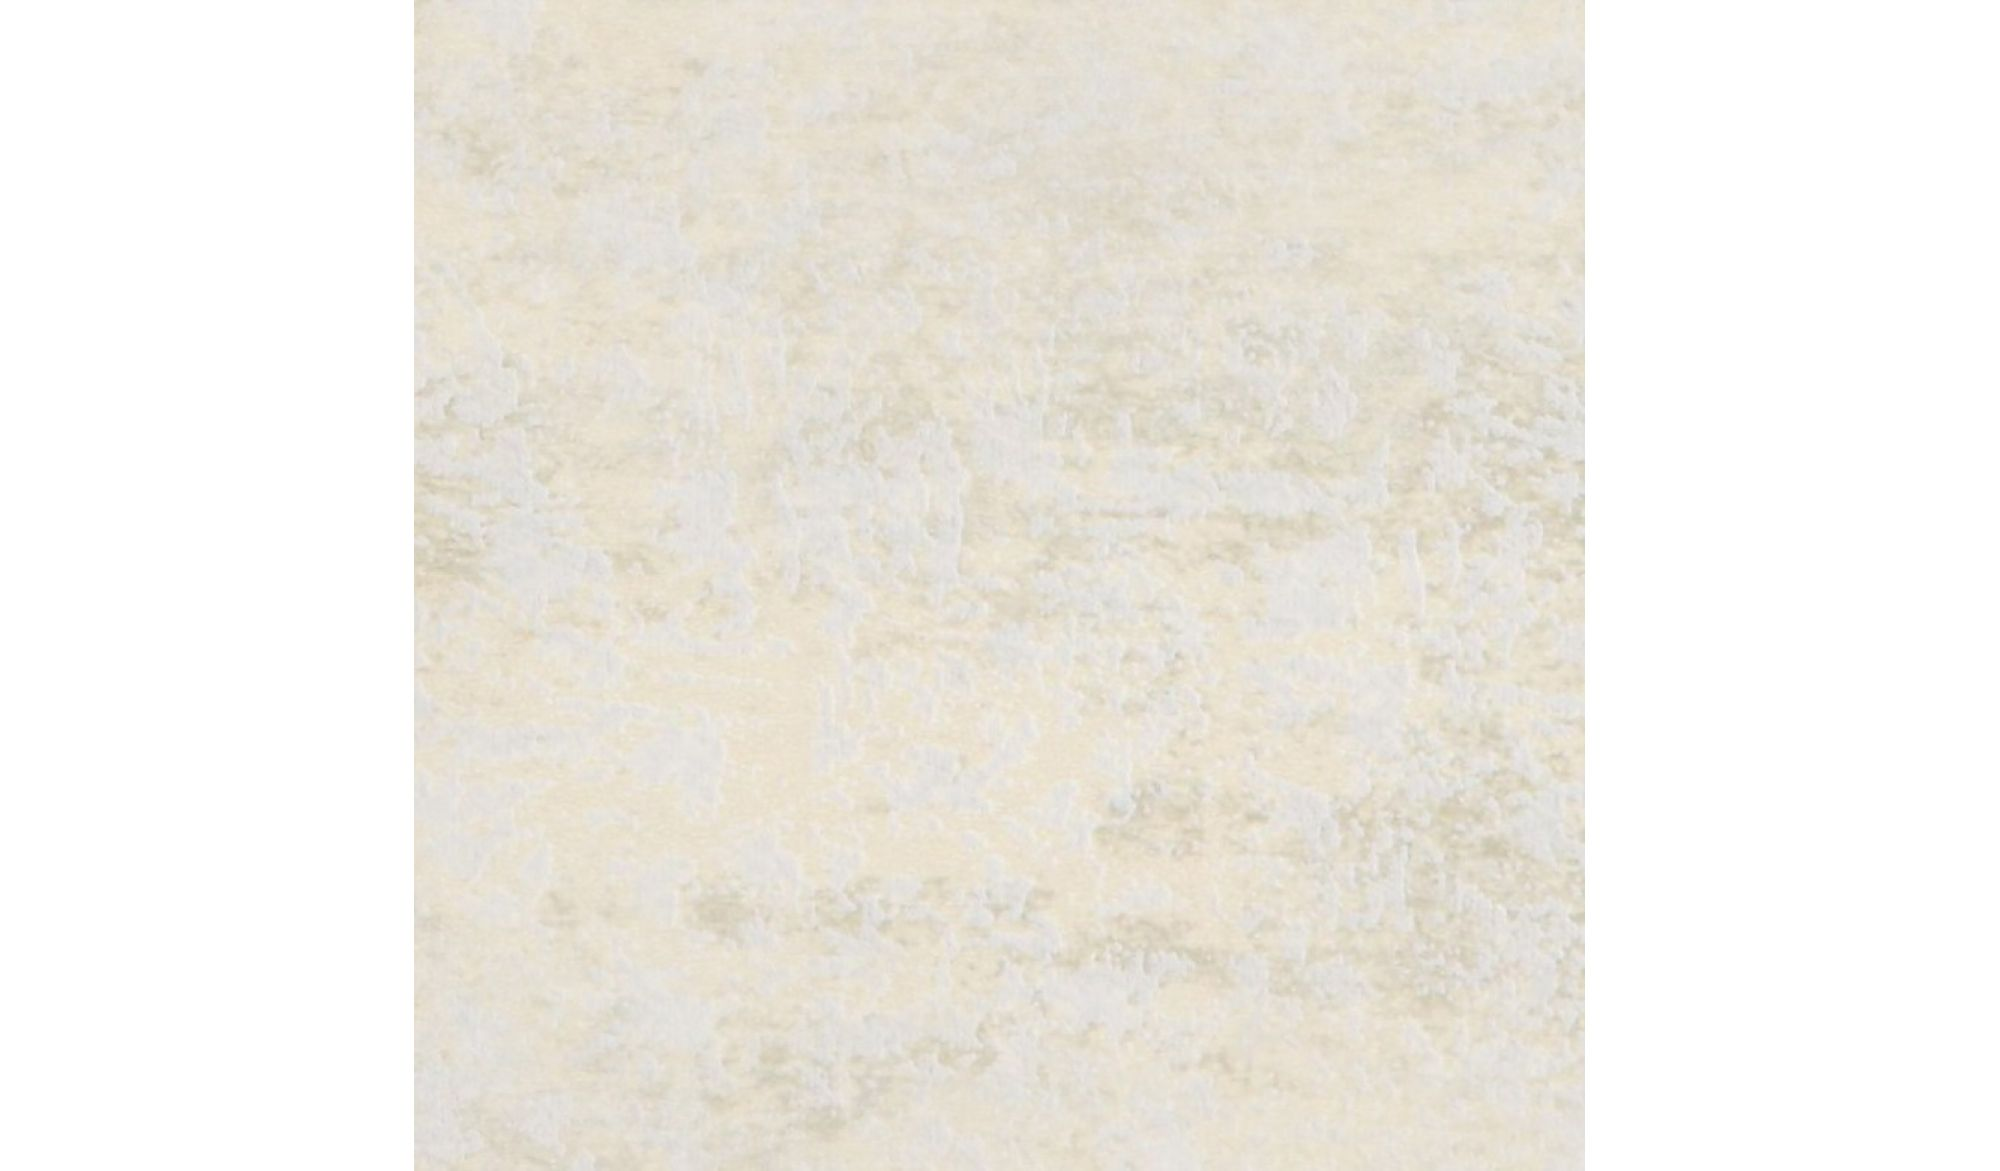 TAPETA RESIN Limestone-17 - Wallpaper alt_tapety_kolor_limestone-17 Melange - Colour